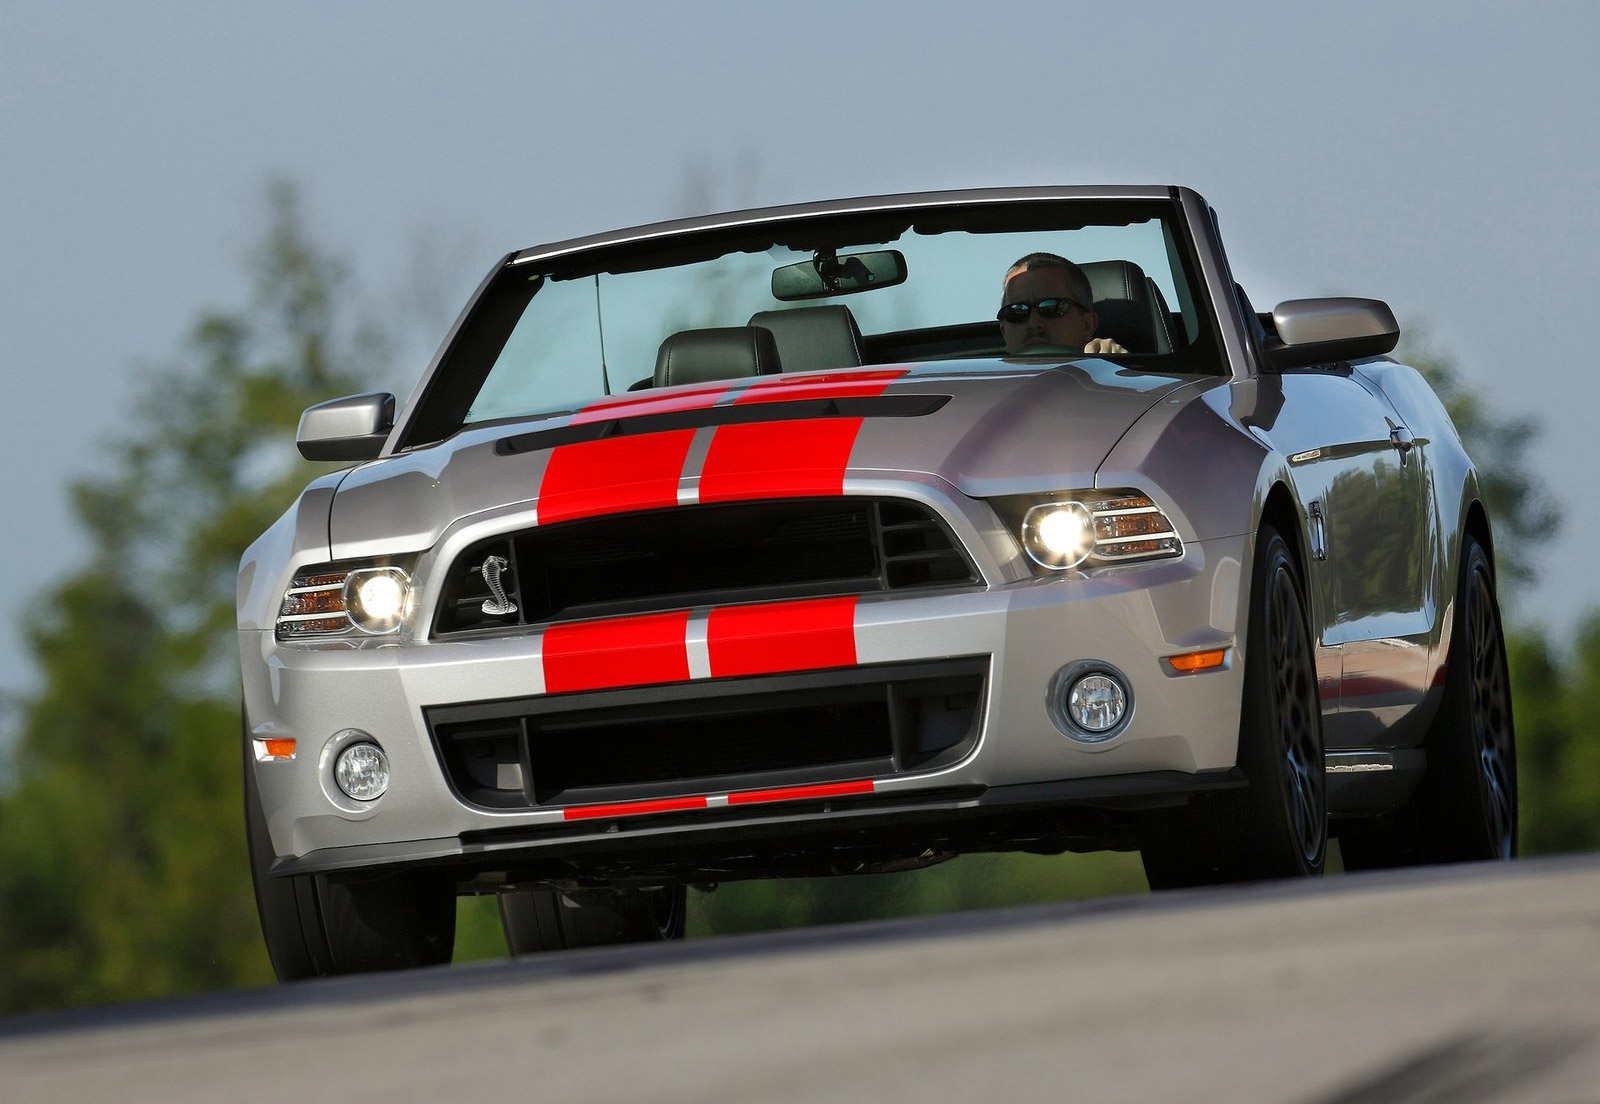 2012 Mustang V6 For Sale >> Ford To Auction Off Last 2014 Shelby GT500 Convertible For ...